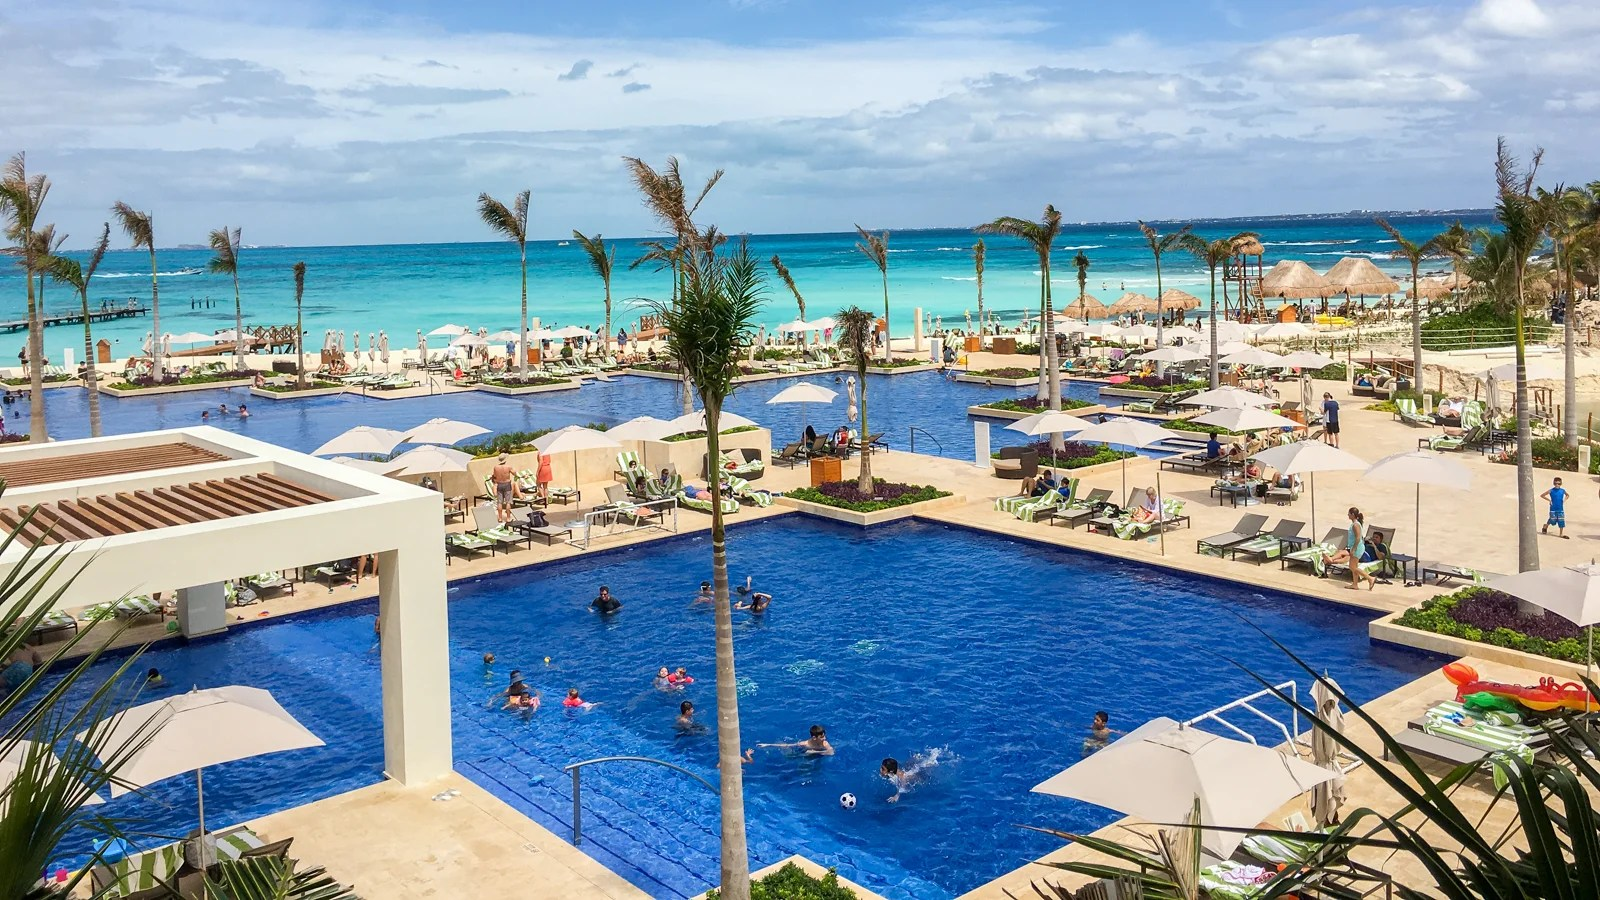 Deal alert: Flights to Cancún from $189 round-trip